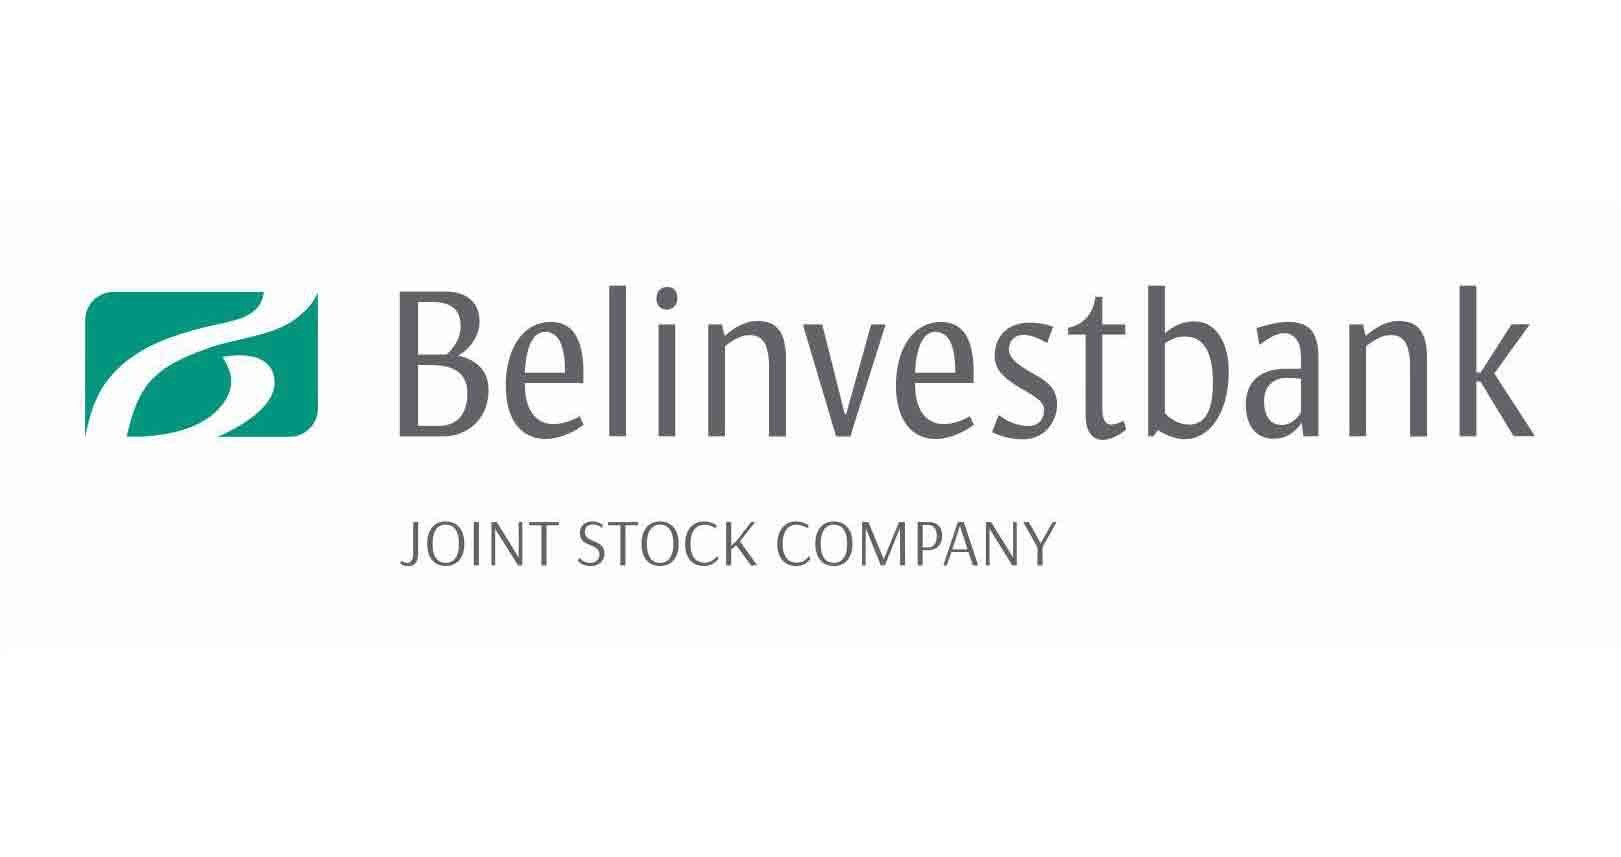 IIB supports Czech exports under its first trade finance deal with Belinvestbank